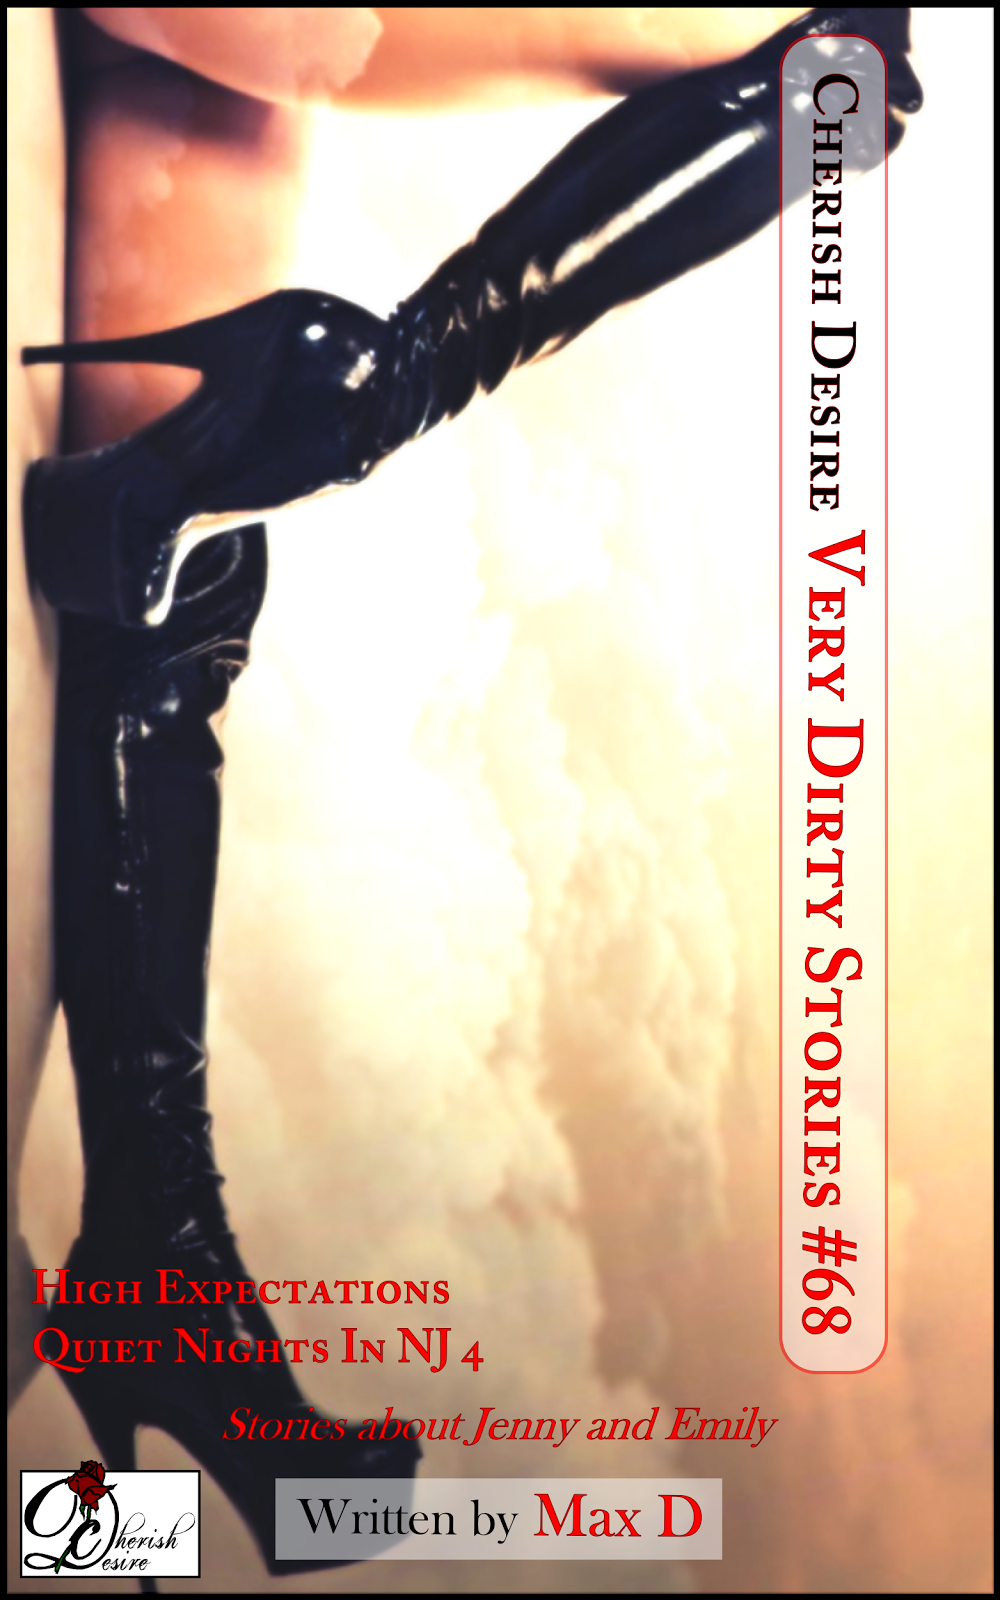 Cherish Desire: Very Dirty Stories #68, Max D, erotica